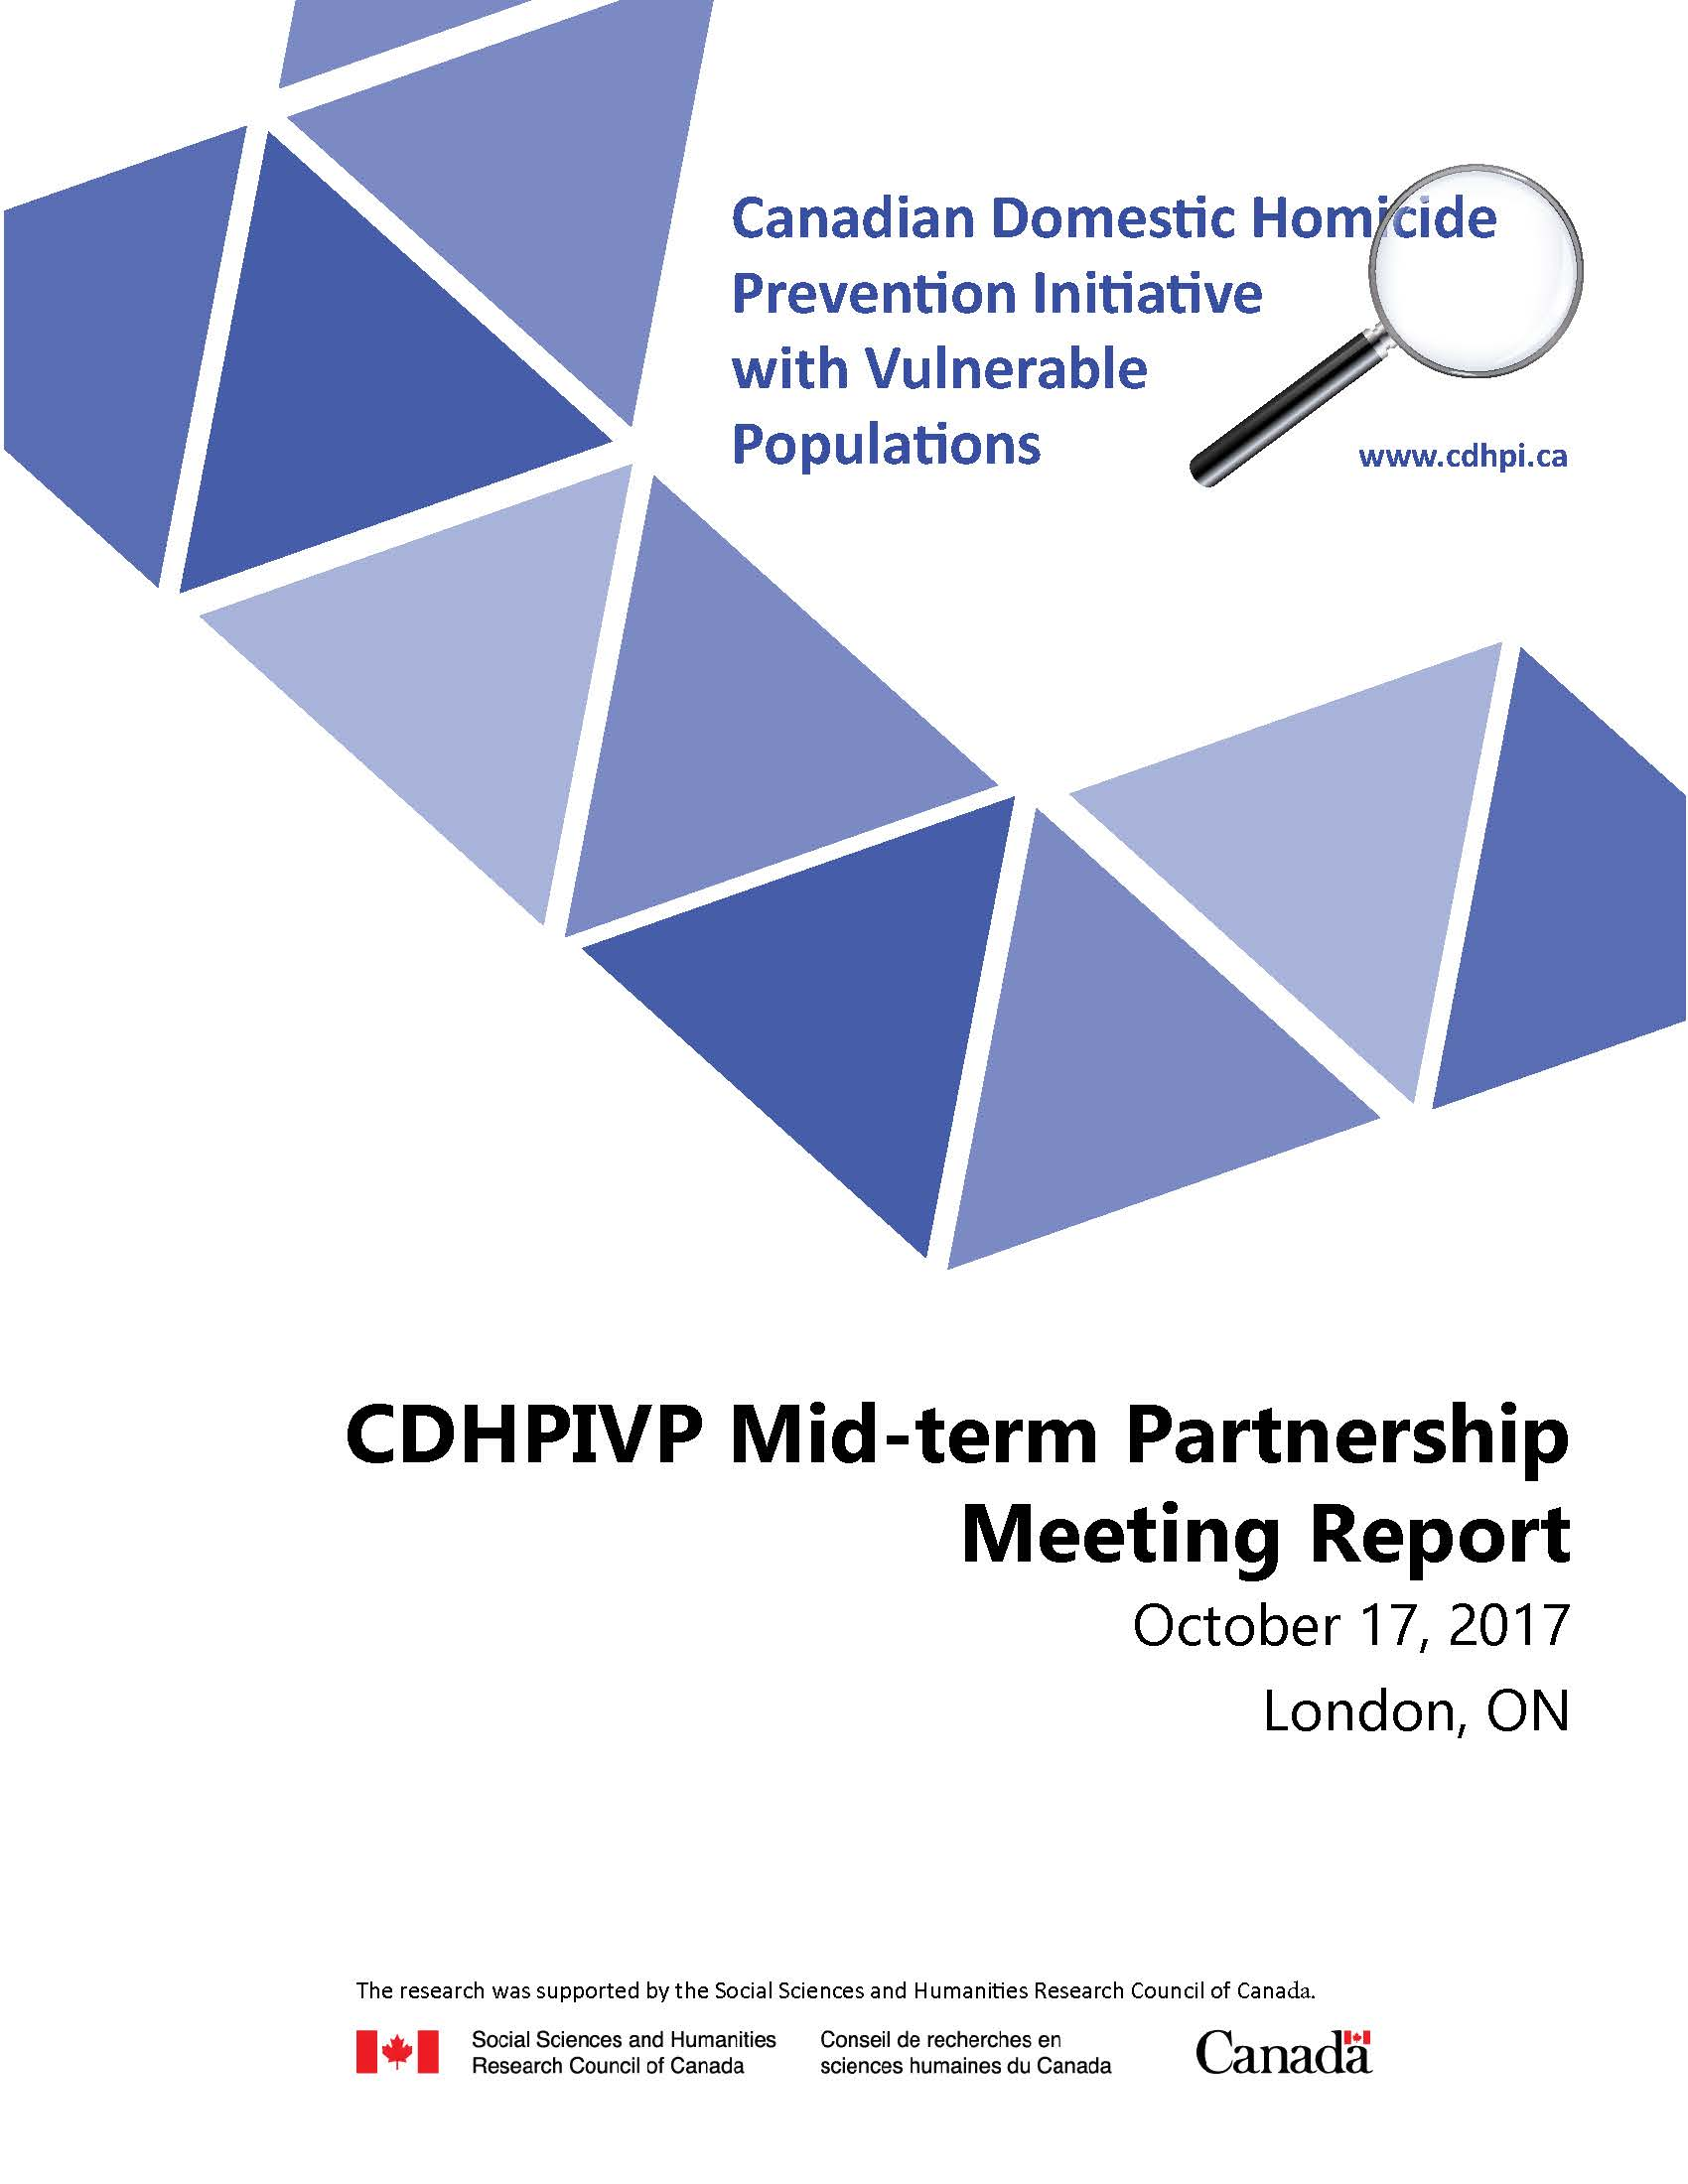 CDHPIVP Partnership Meeting Report cover page